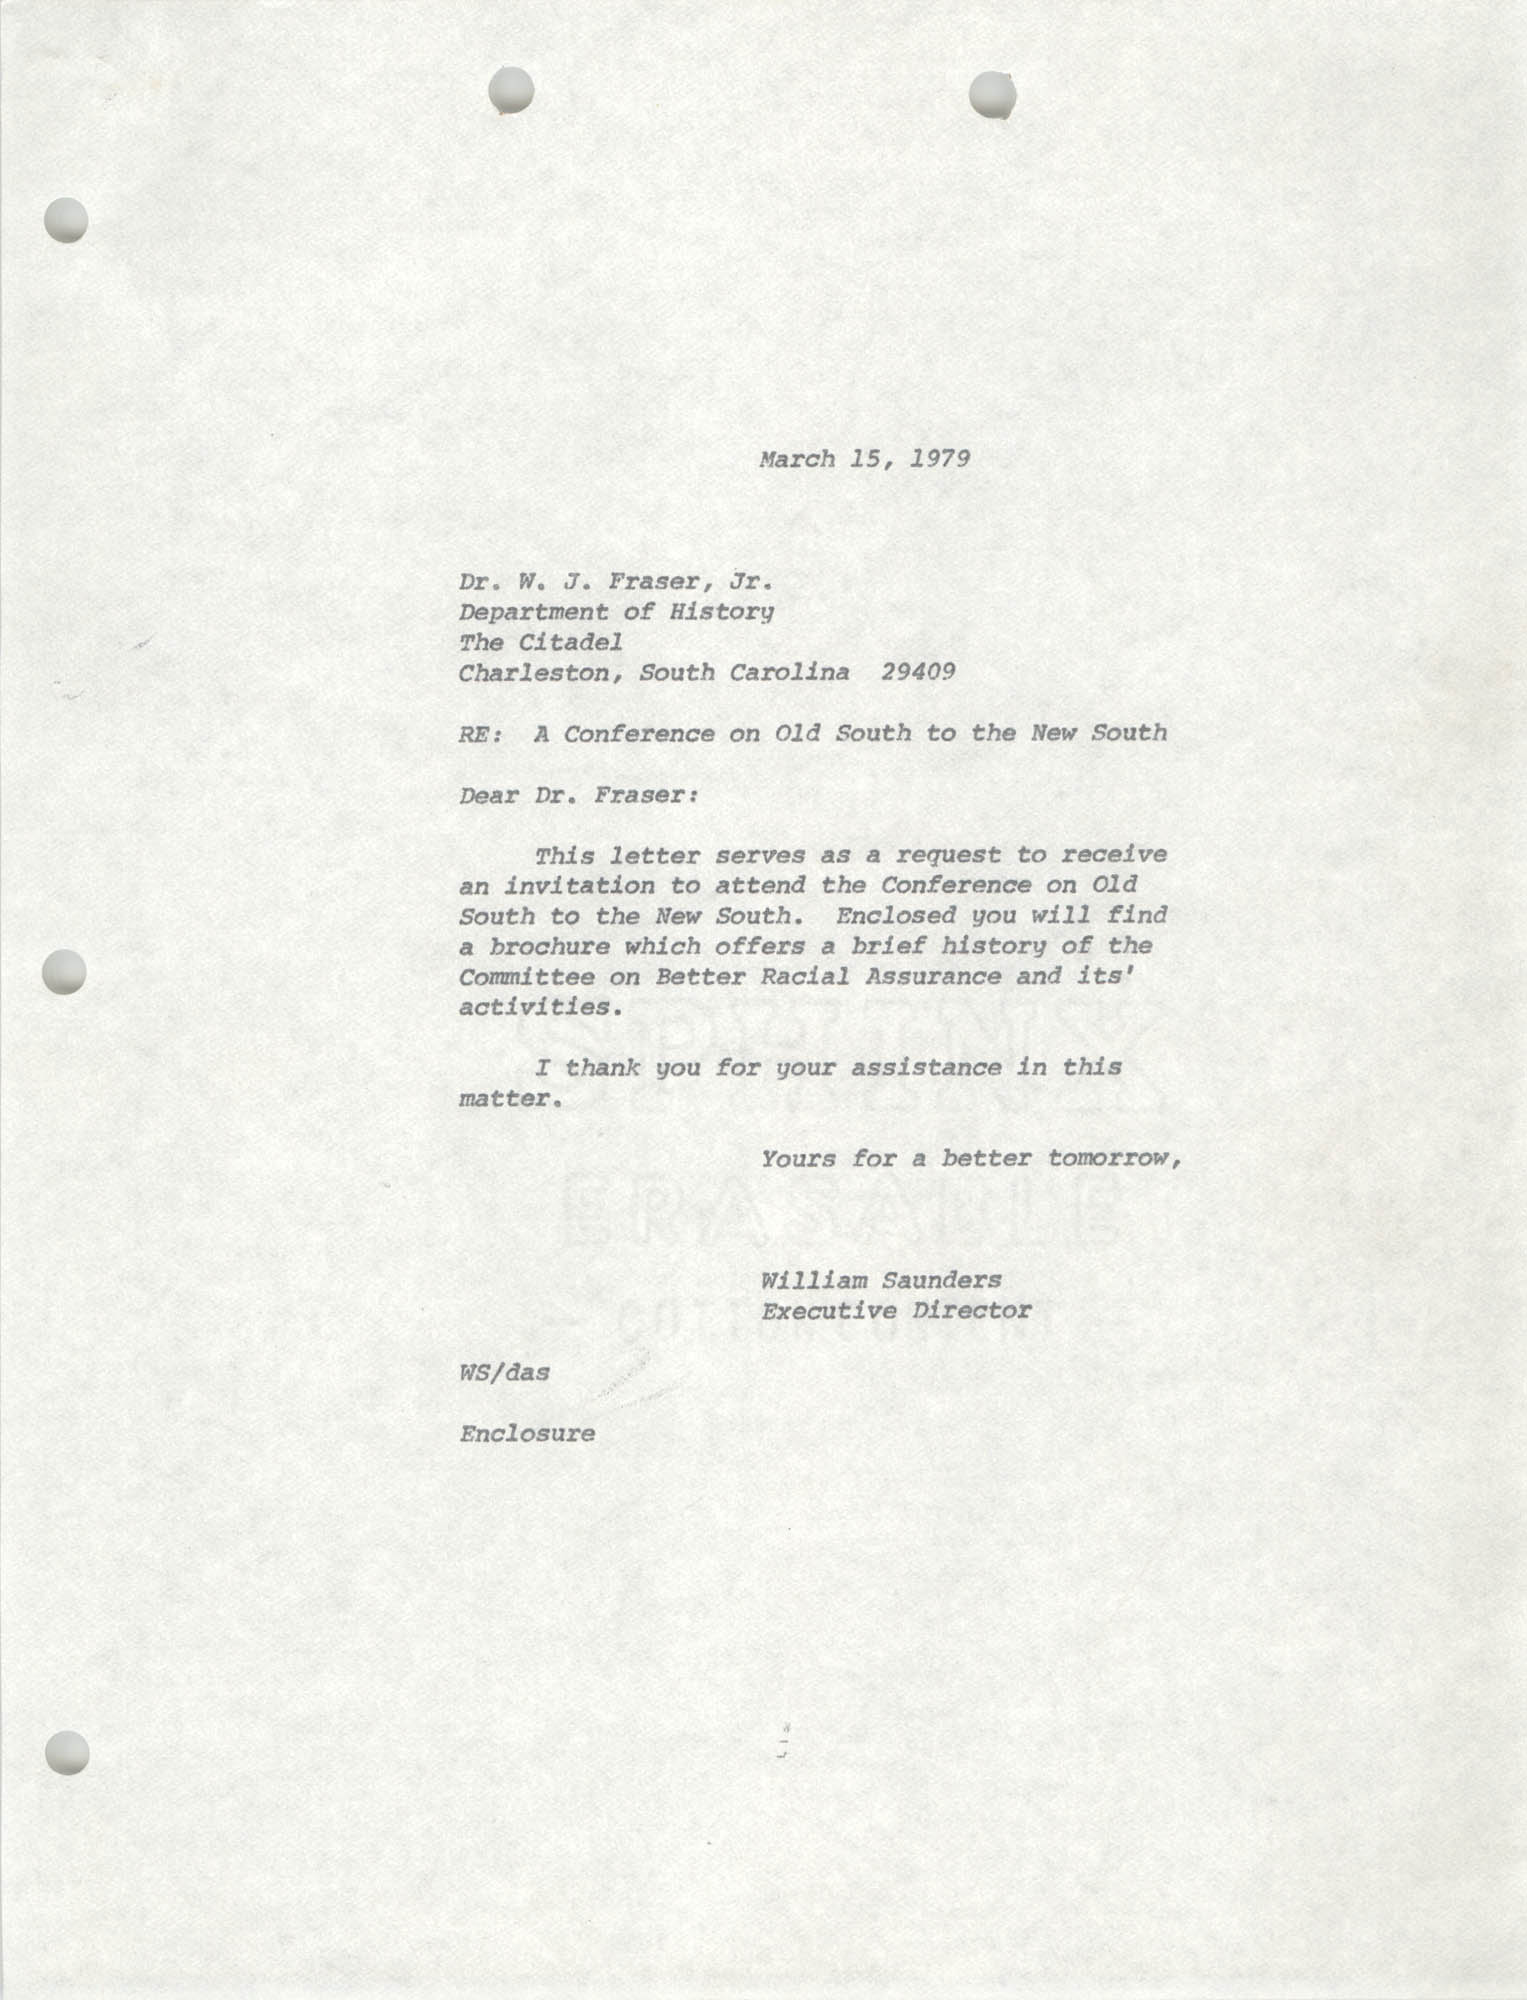 Letter from William Saunders to Dr. W. J. Fraser, Jr., March 15, 1979